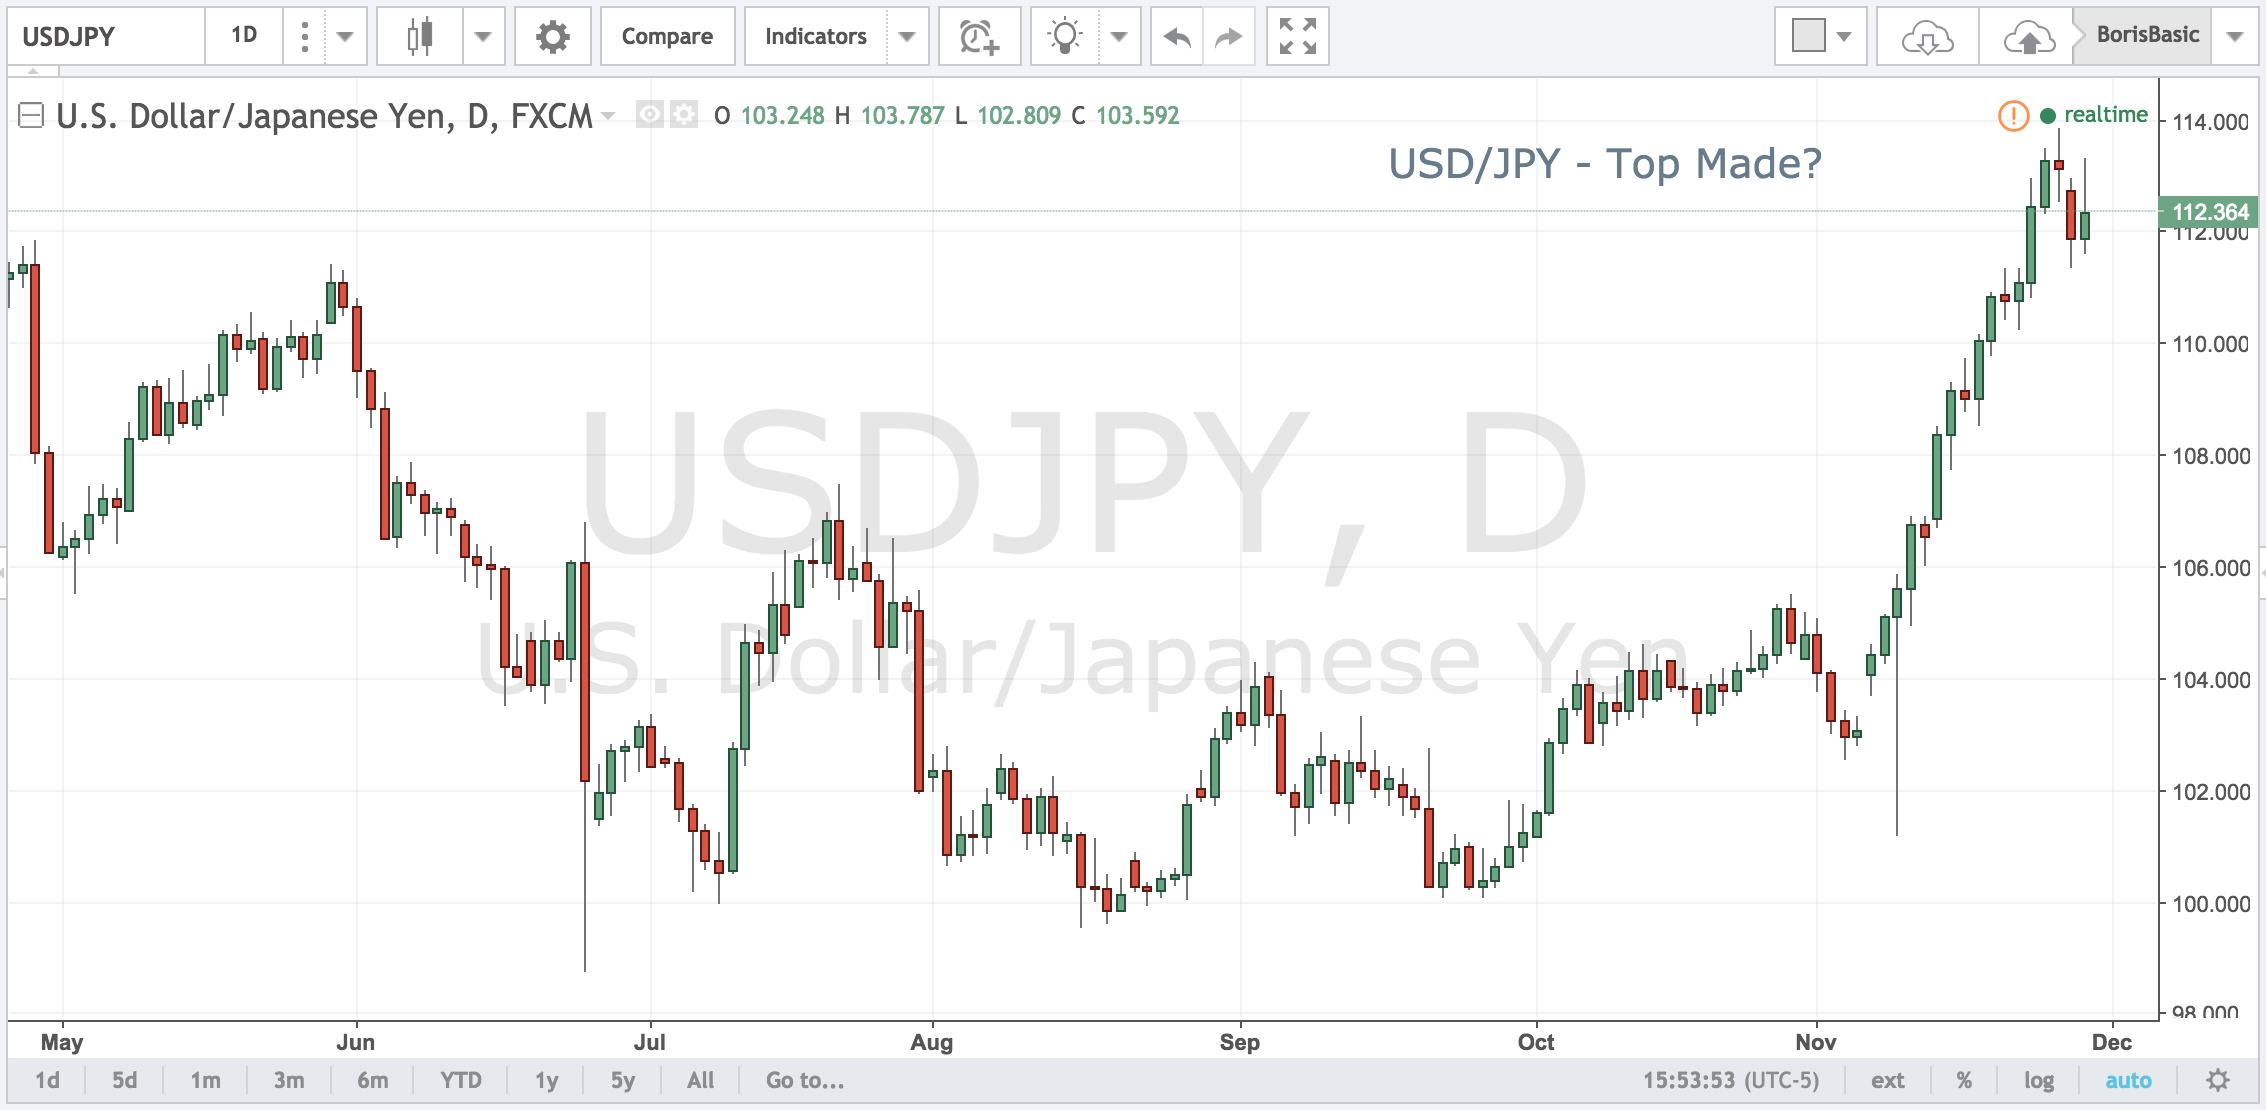 USDJPY – Top Made?